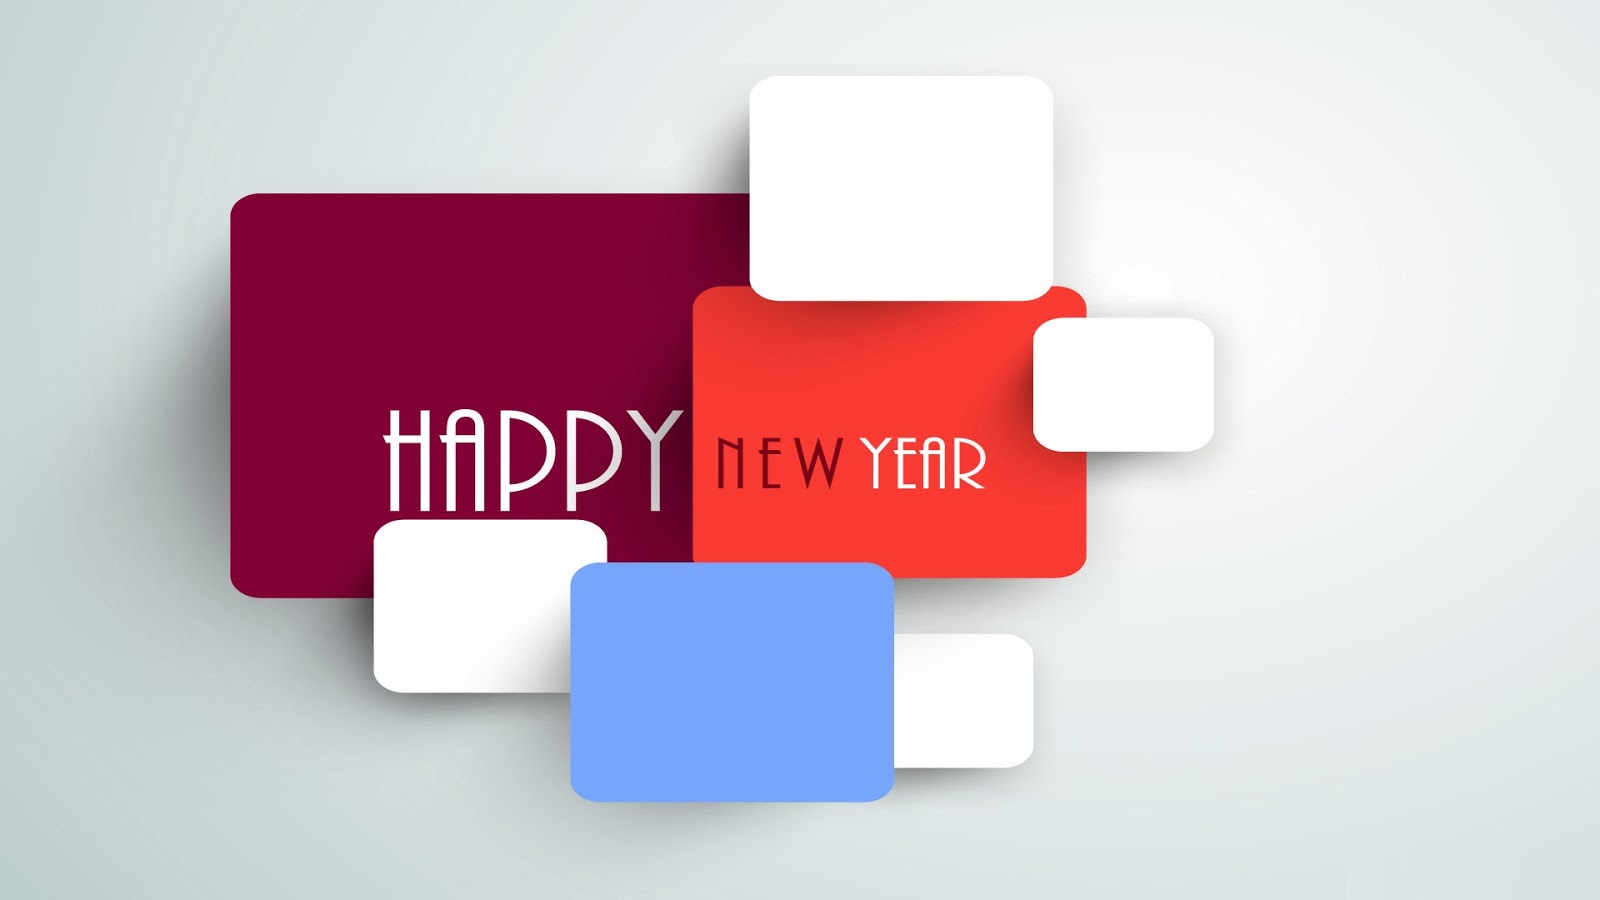 Image poetry happy new year happy new year 2014 new year 2014 hd happy new year happy new year 2014 new year 2014 hd wallpaper new year 2014 hd wallpapers happy new year hd wallpapers voltagebd Image collections